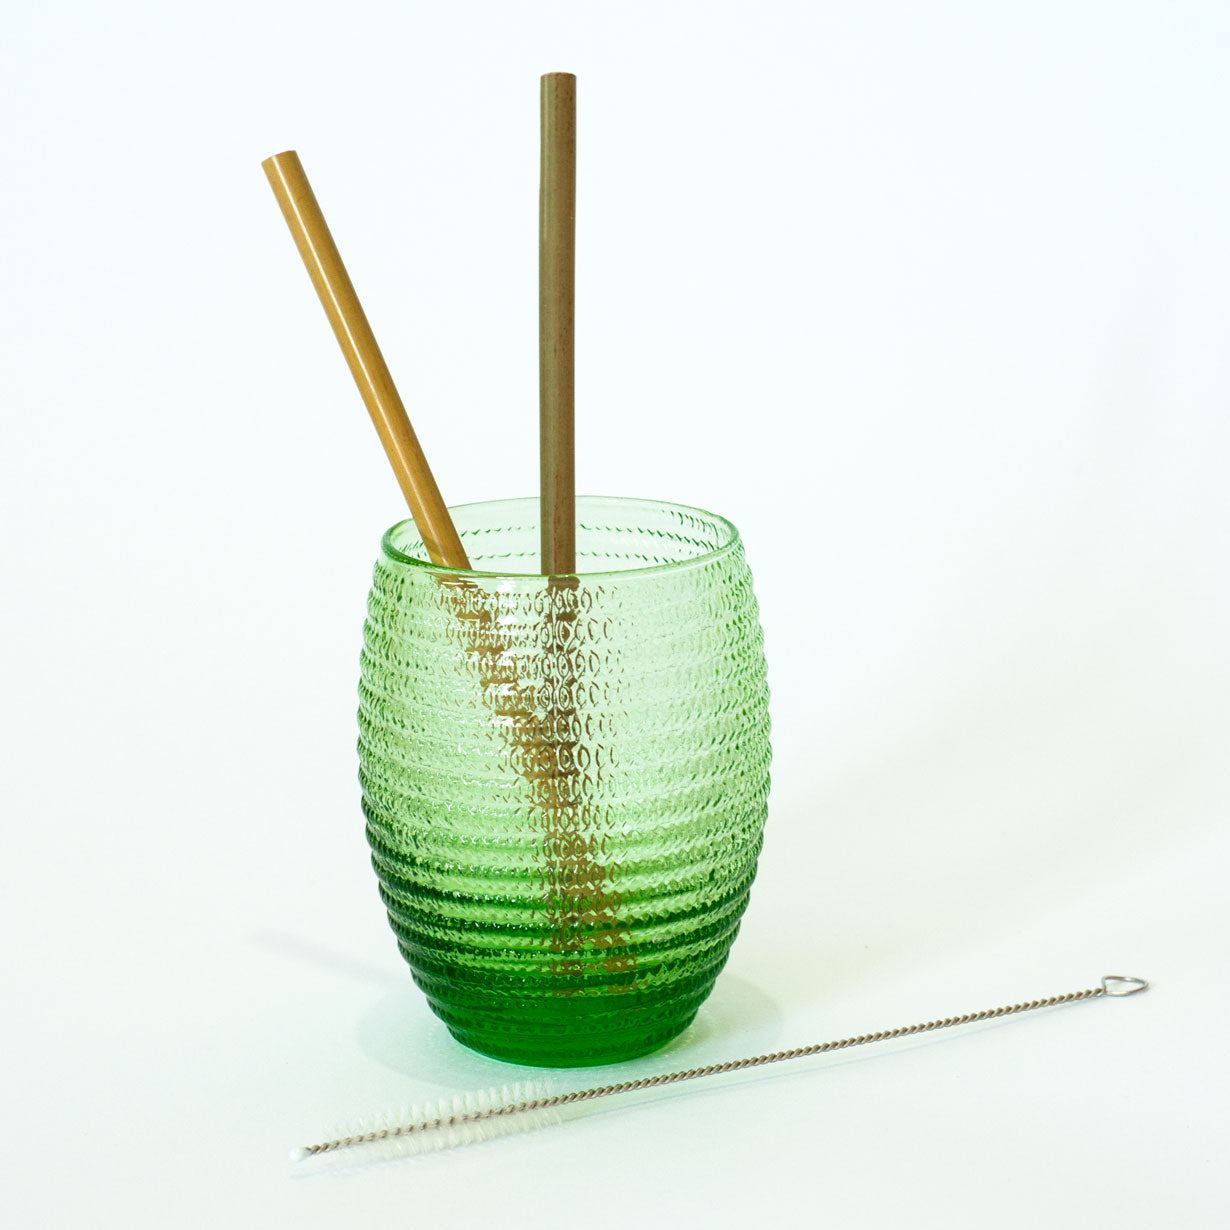 The Bam&Boo Straws | Home | The Bam&Boo | [product_tag] - Fair Bazaar Ethical Living